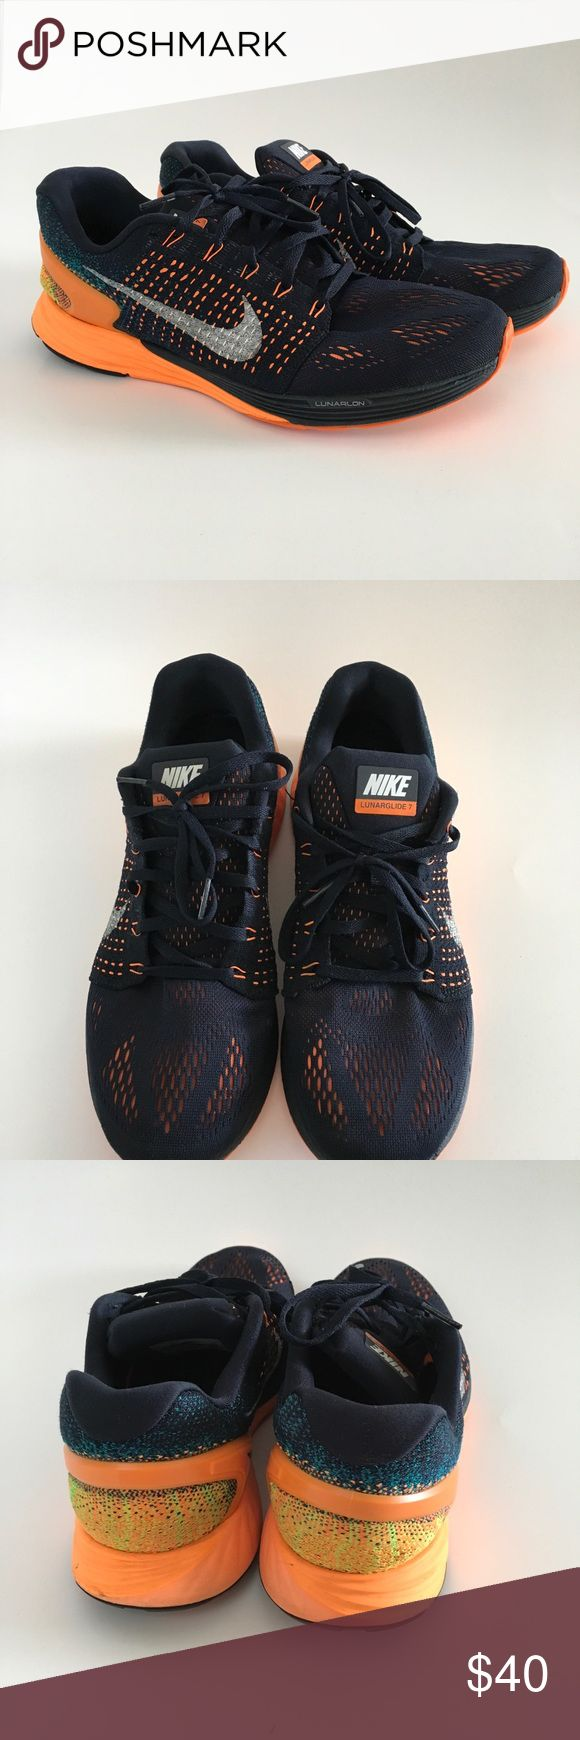 Nike Lunarglide 7 running shoes Used Nike Lunarglide 7 running shoes size 9.5. Some wear on the soles shown in pictures but shoes are in good condition Nike Shoes Sneakers